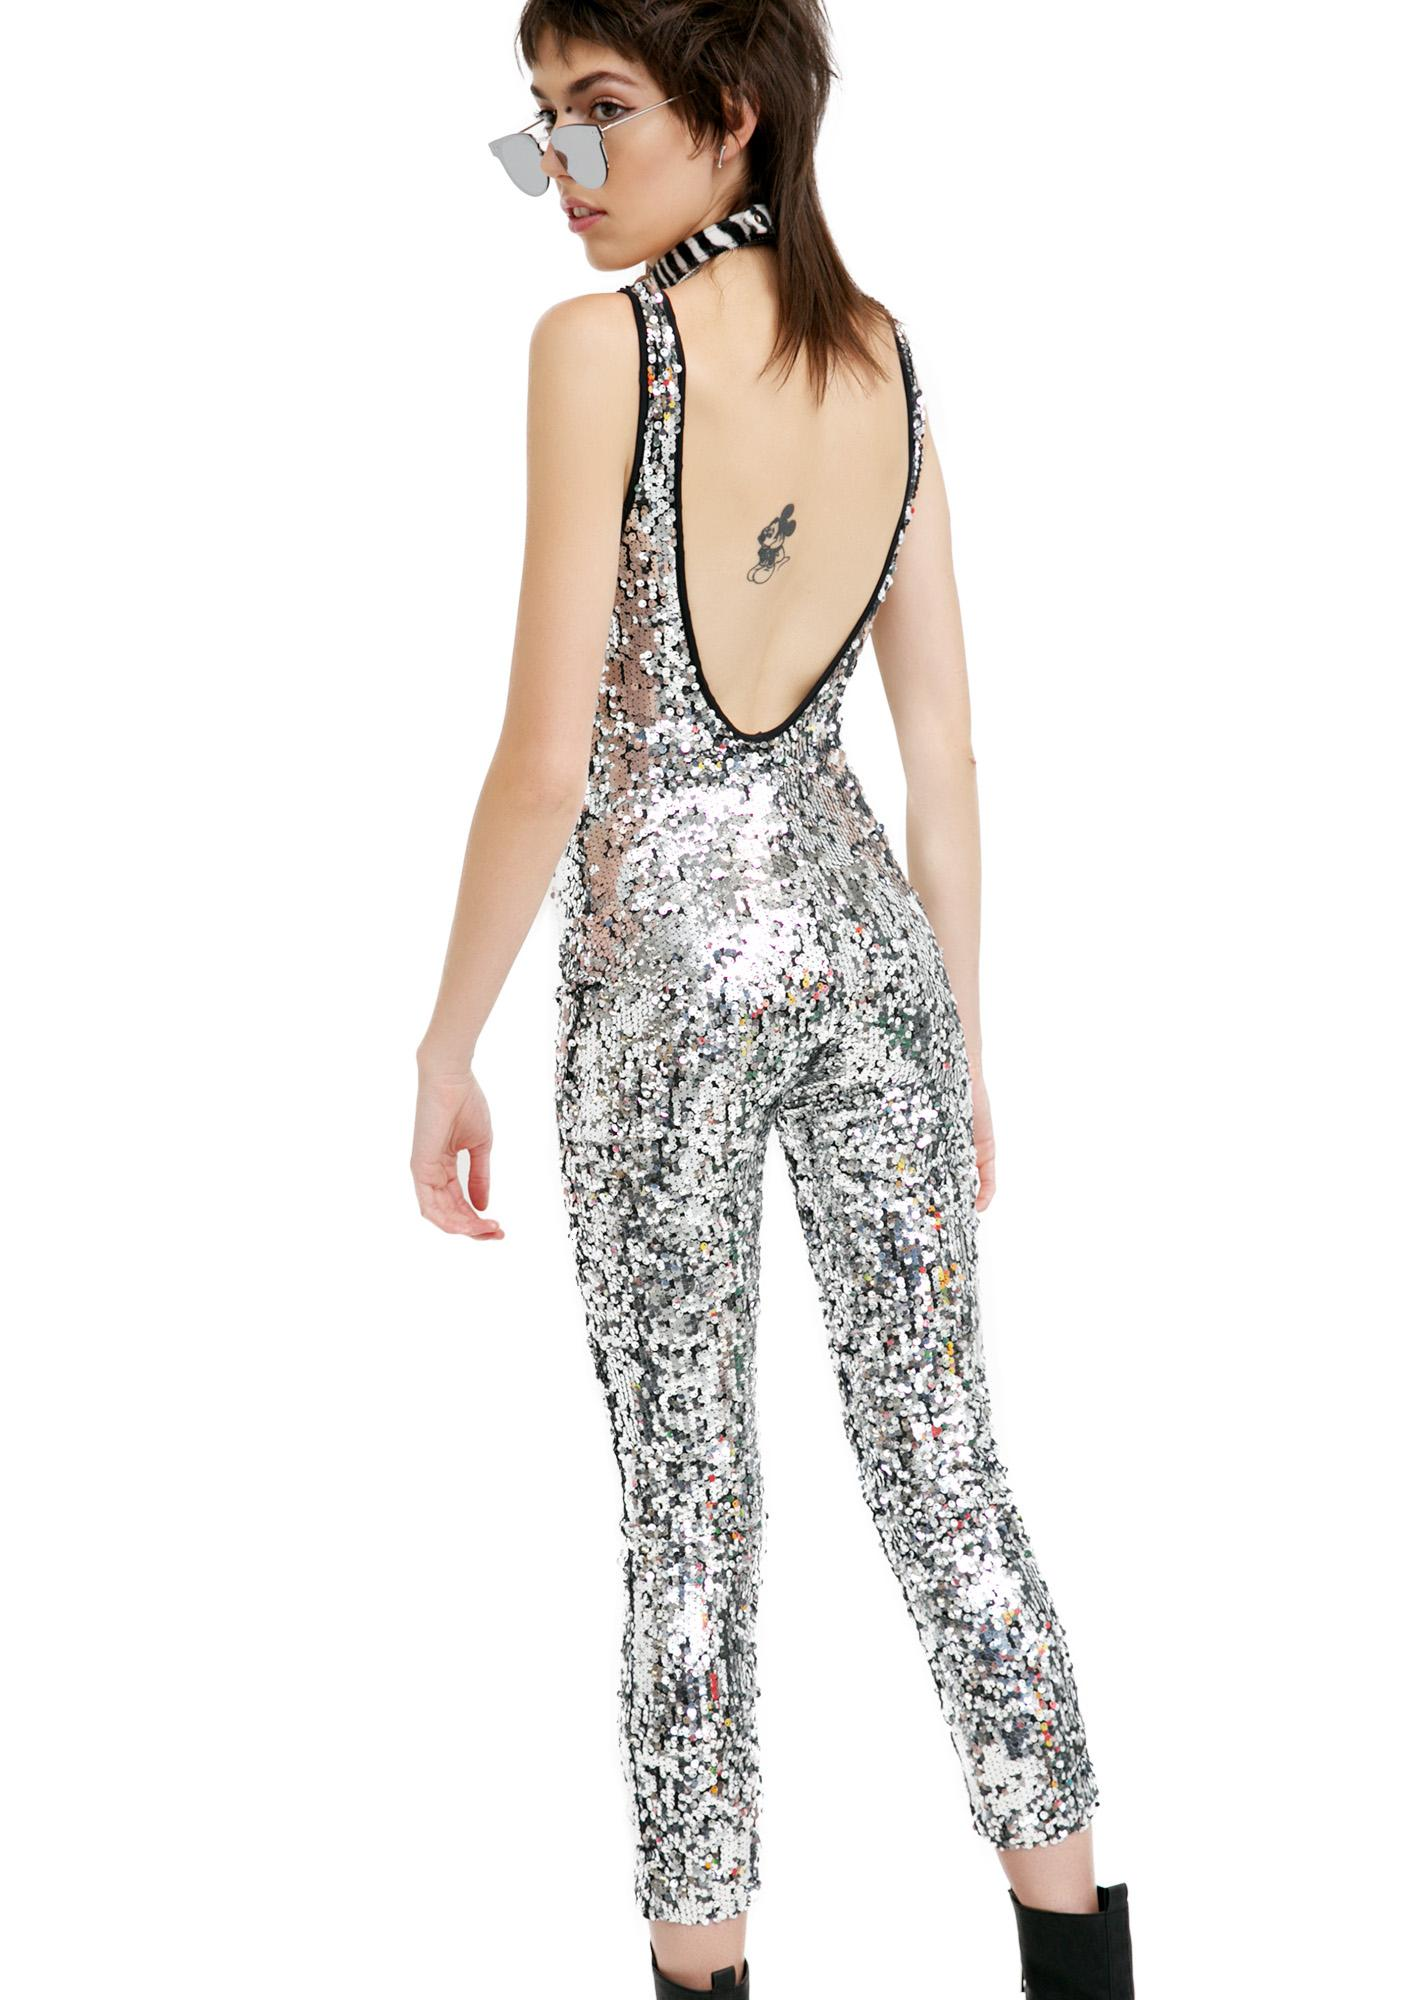 Silver sequin jumpsuit 120 00 120 0000 jaded london silver sequin